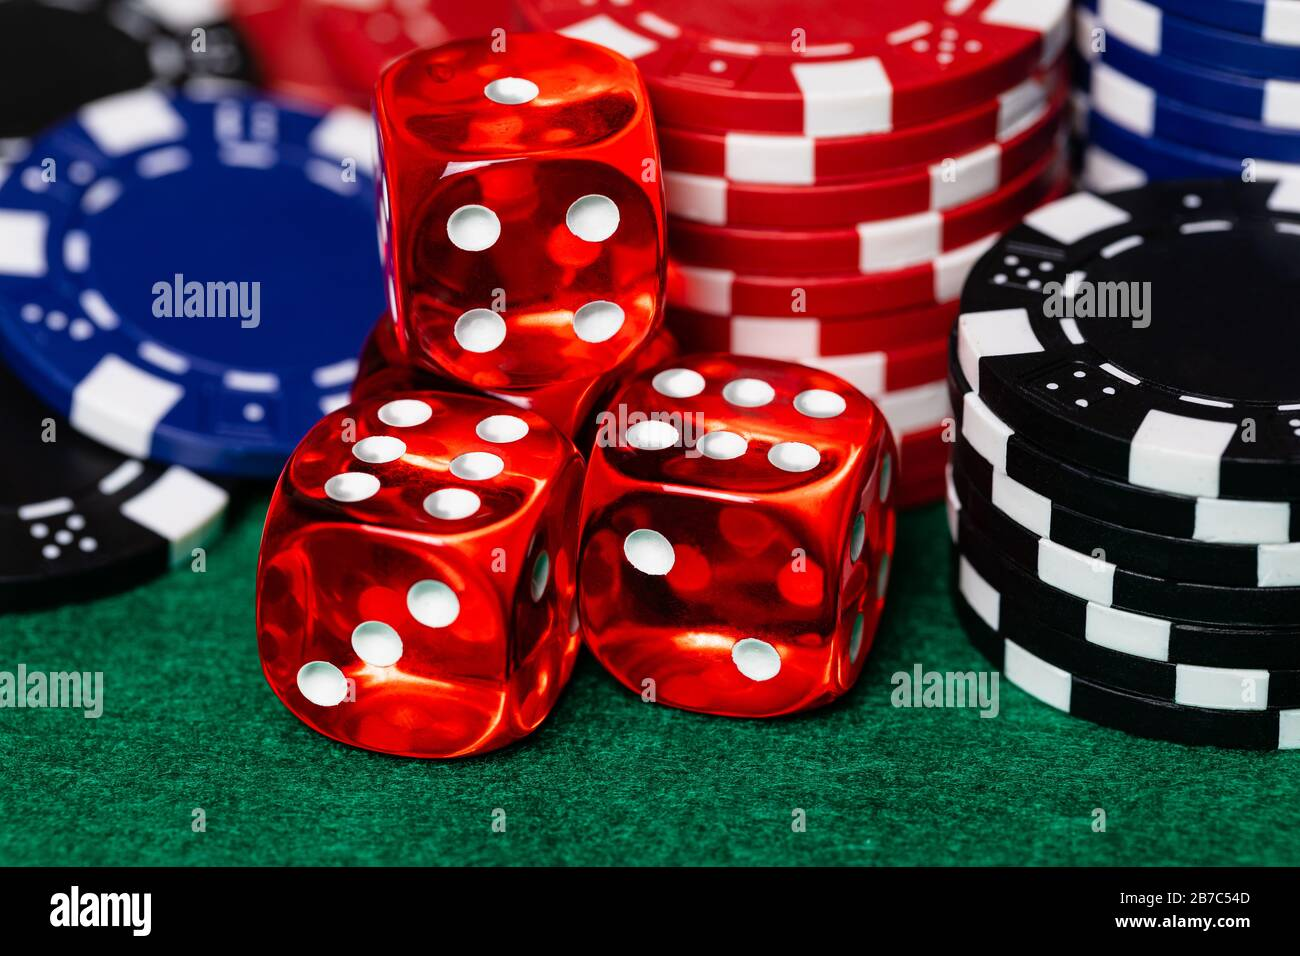 A Macro Of Red Translucent Casino Style Dice With White Pips Surrounded By Reb Blue And Black Betting Chips On A Green Felt Gaming Surface High Deta Stock Photo Alamy